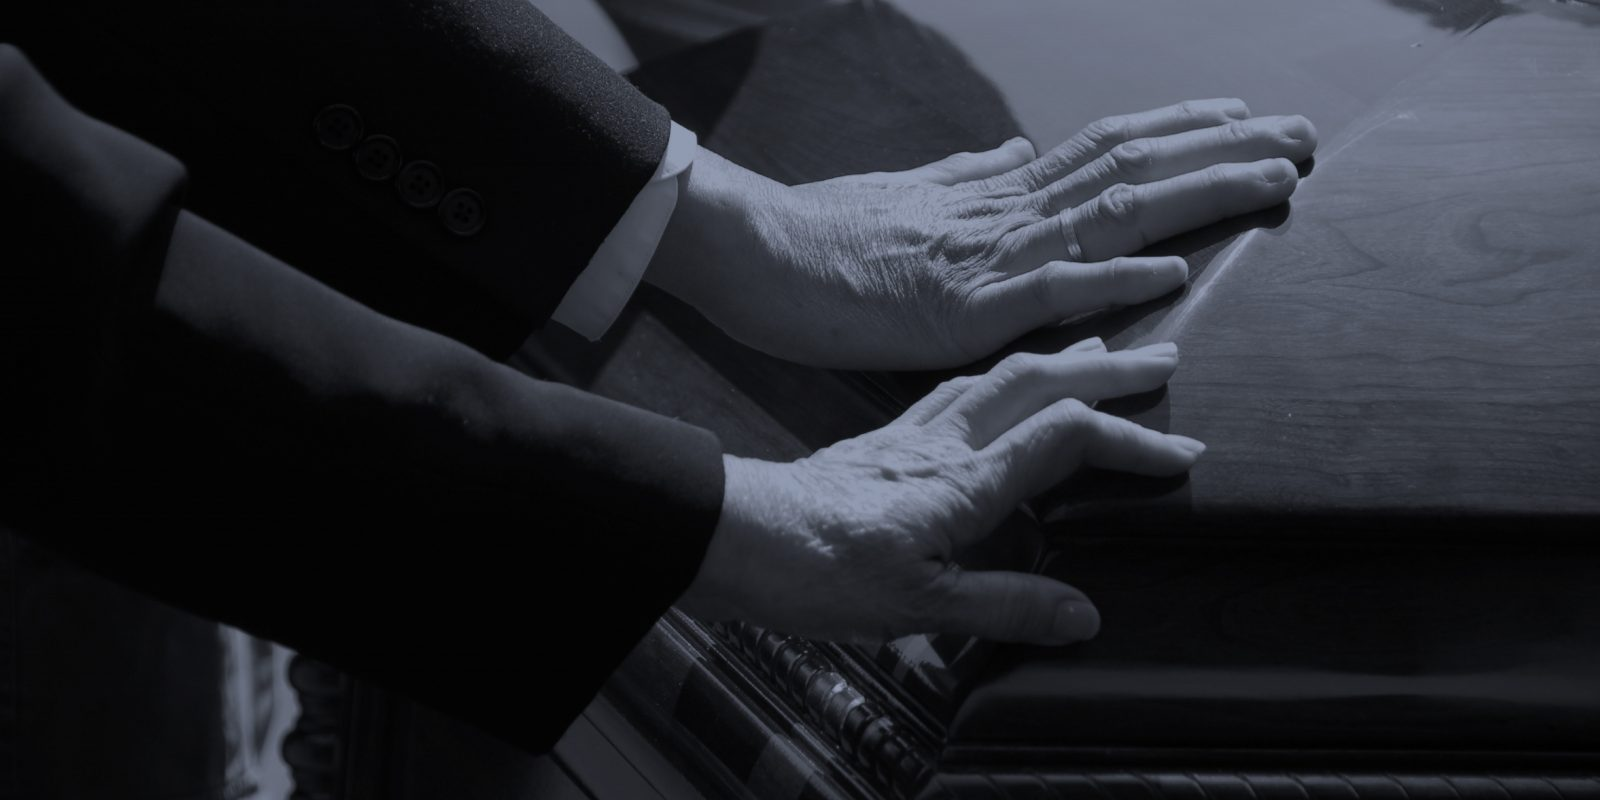 Medical malpractice wrongful death hands on coffin